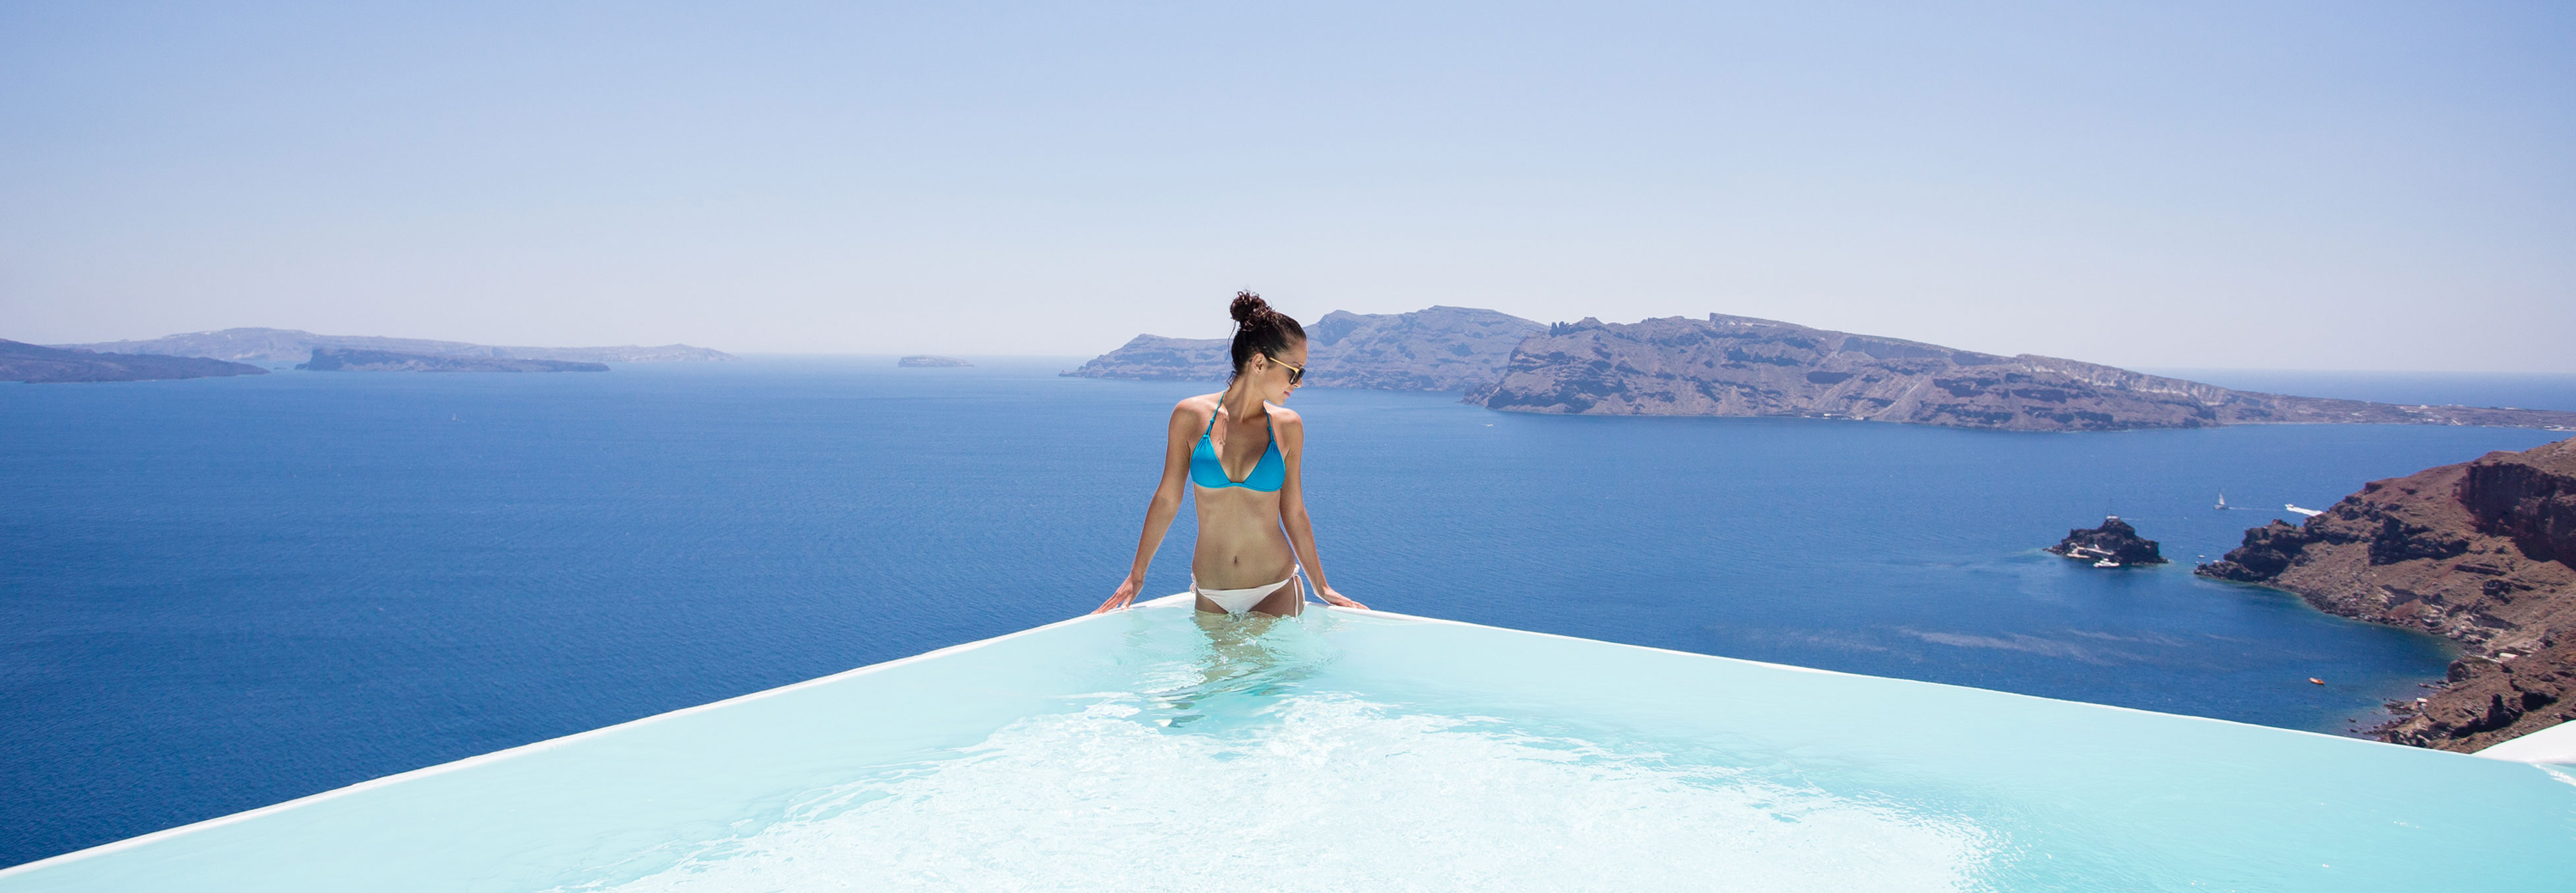 Canaves Oia Suites - Luxury Santorini Greece Hotel - Ker & Downey